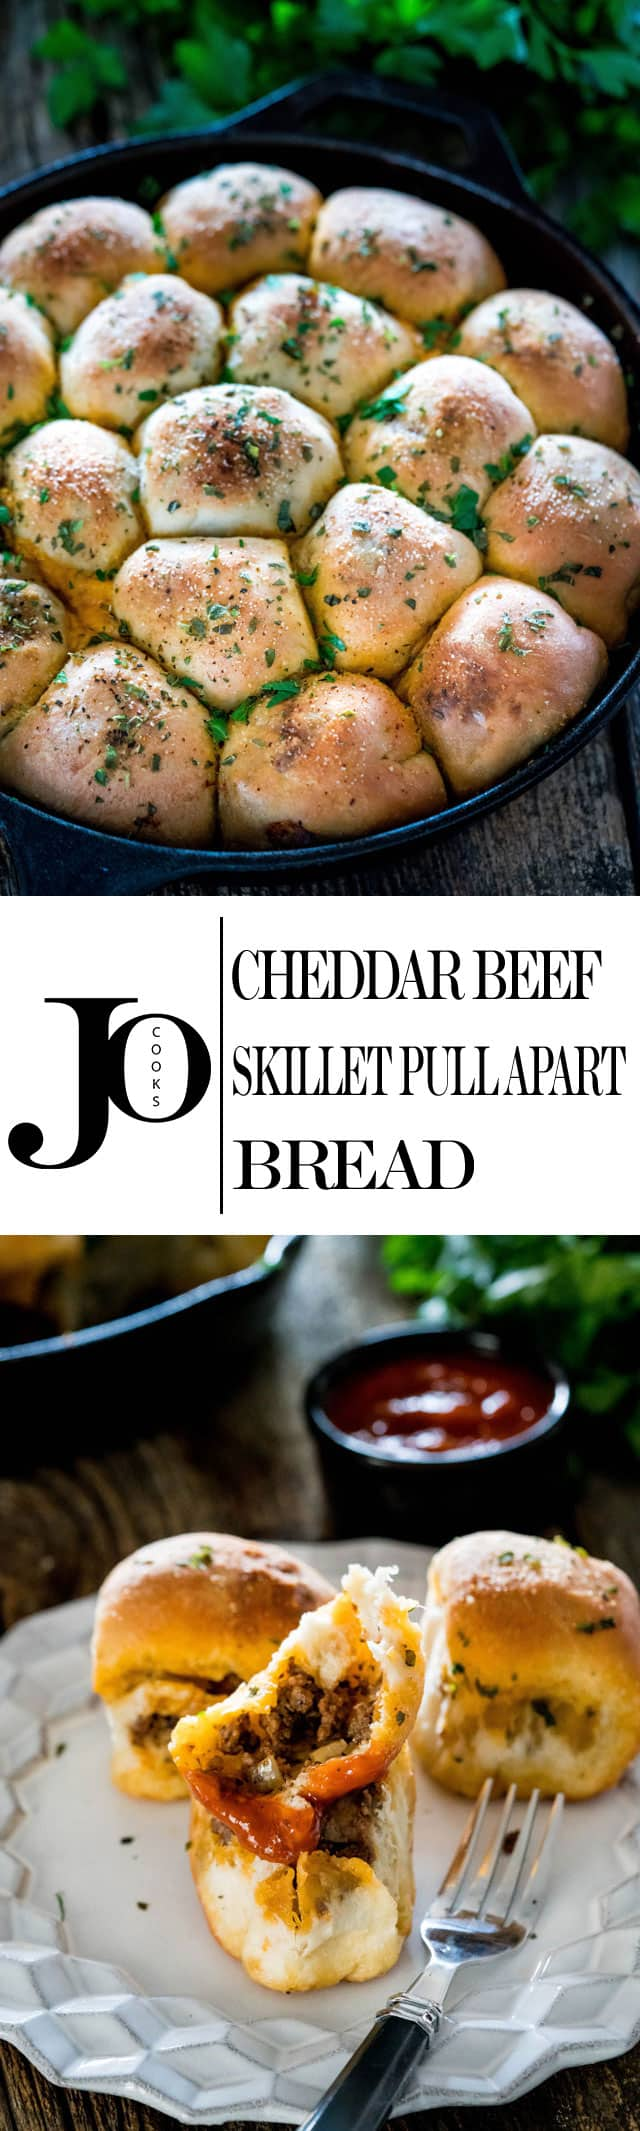 Cheddar Beef Skillet Pull Apart Bread - perfect for a snack, appetizer or school lunch! These rolls are filled with a tasty beef and mushroom mixture and lots of cheddar cheese! Great crowd pleaser!